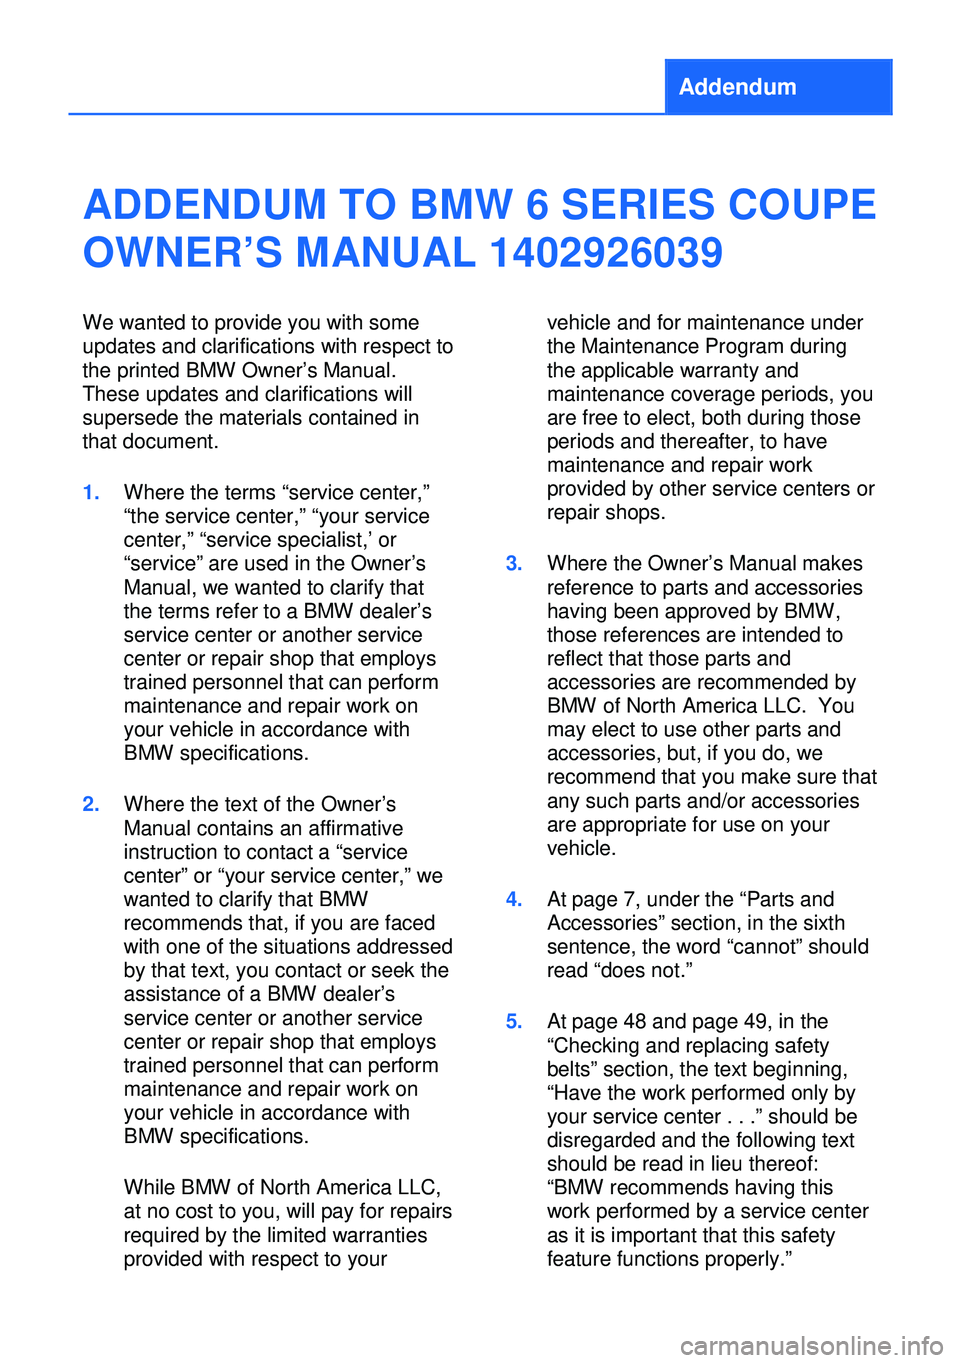 BMW 6 SERIES COUPE 2013 F13 Owners Manual, Page 5